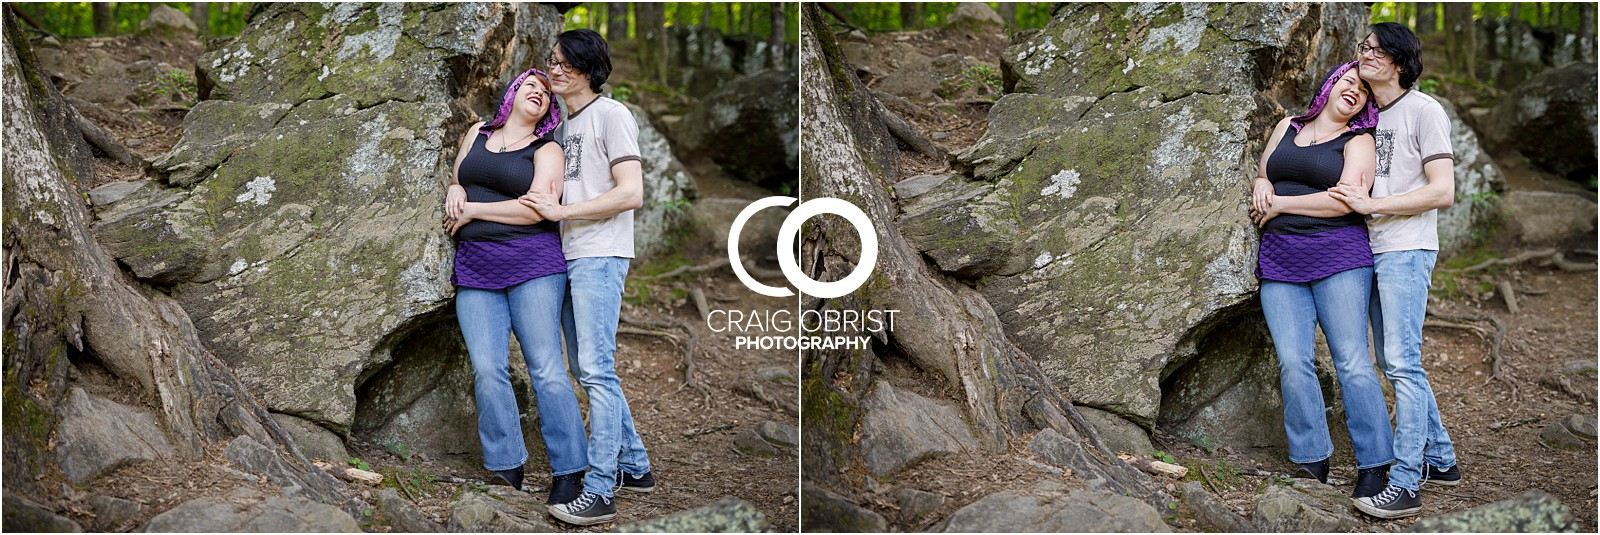 sweetwater creek park engagement portraits_0007.jpg